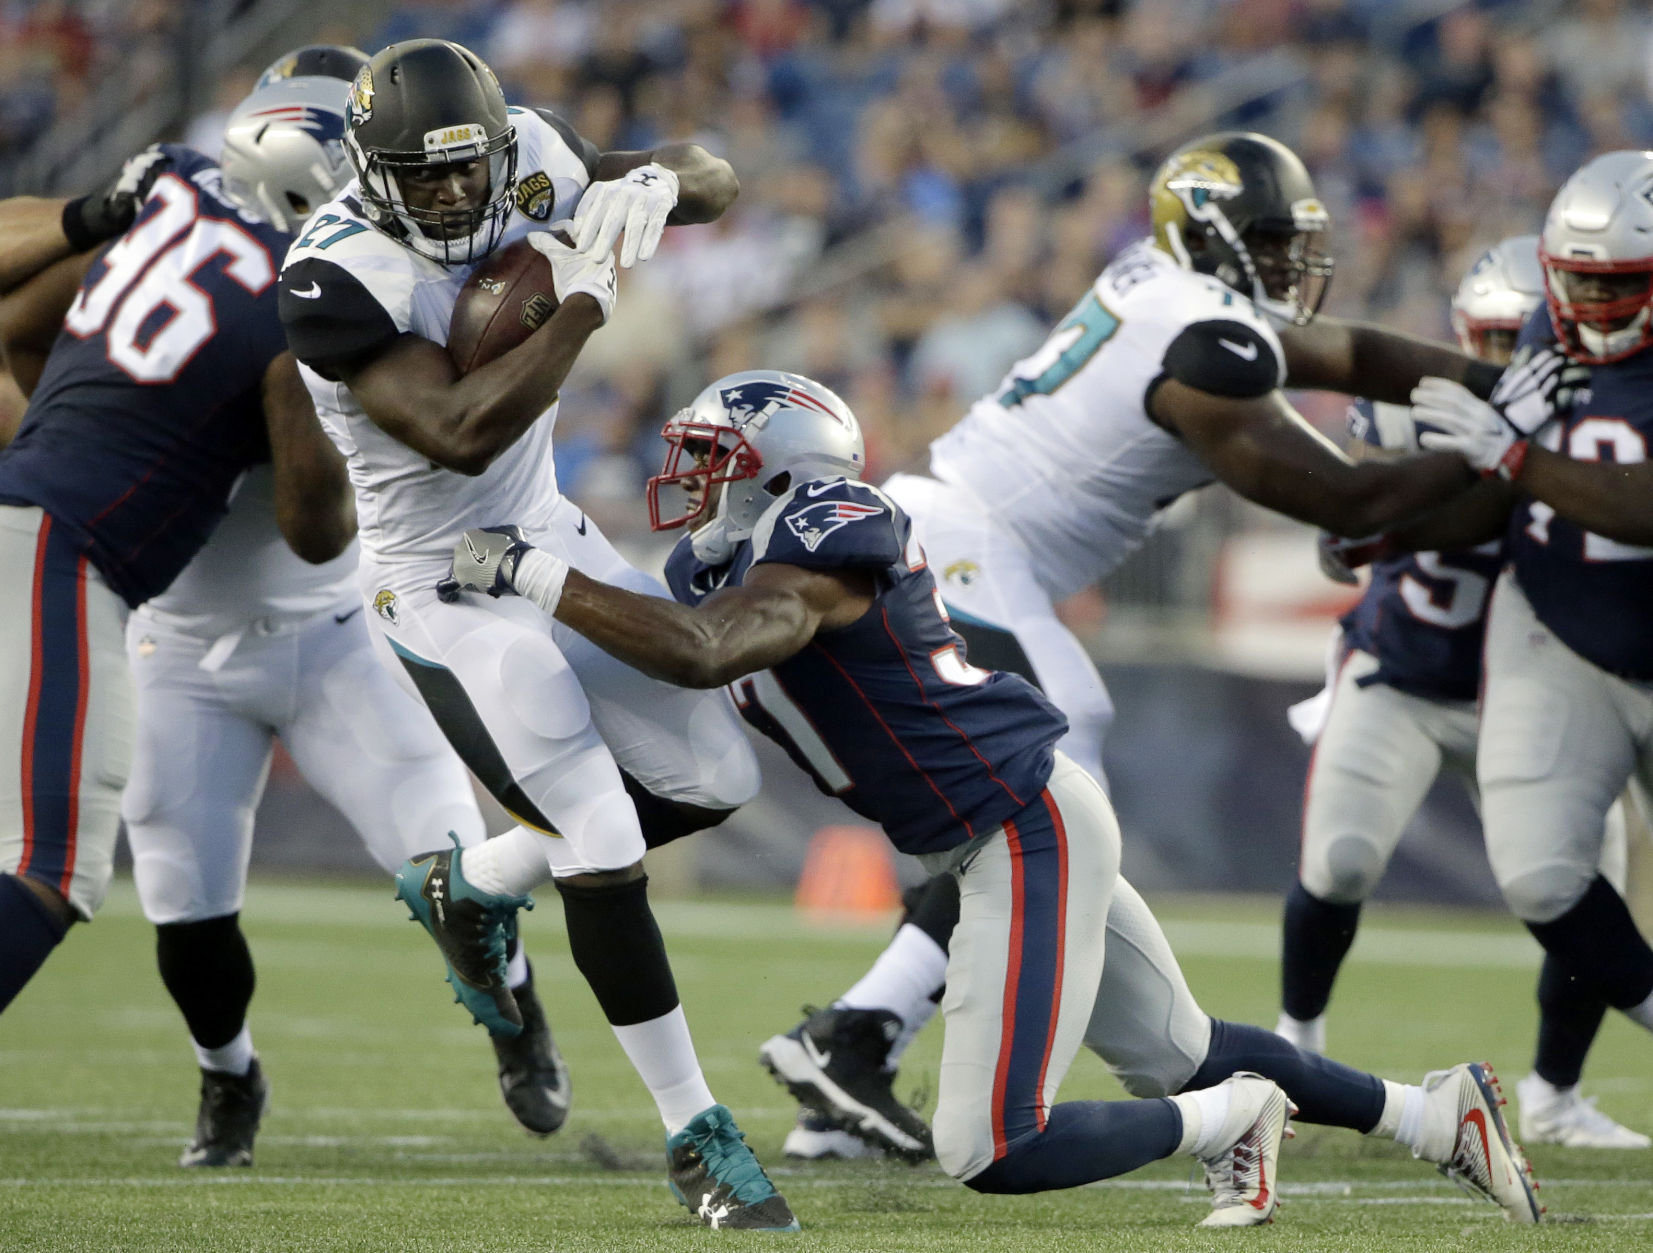 Branden Albert changes mind about retiring, wants to return to Jaguars